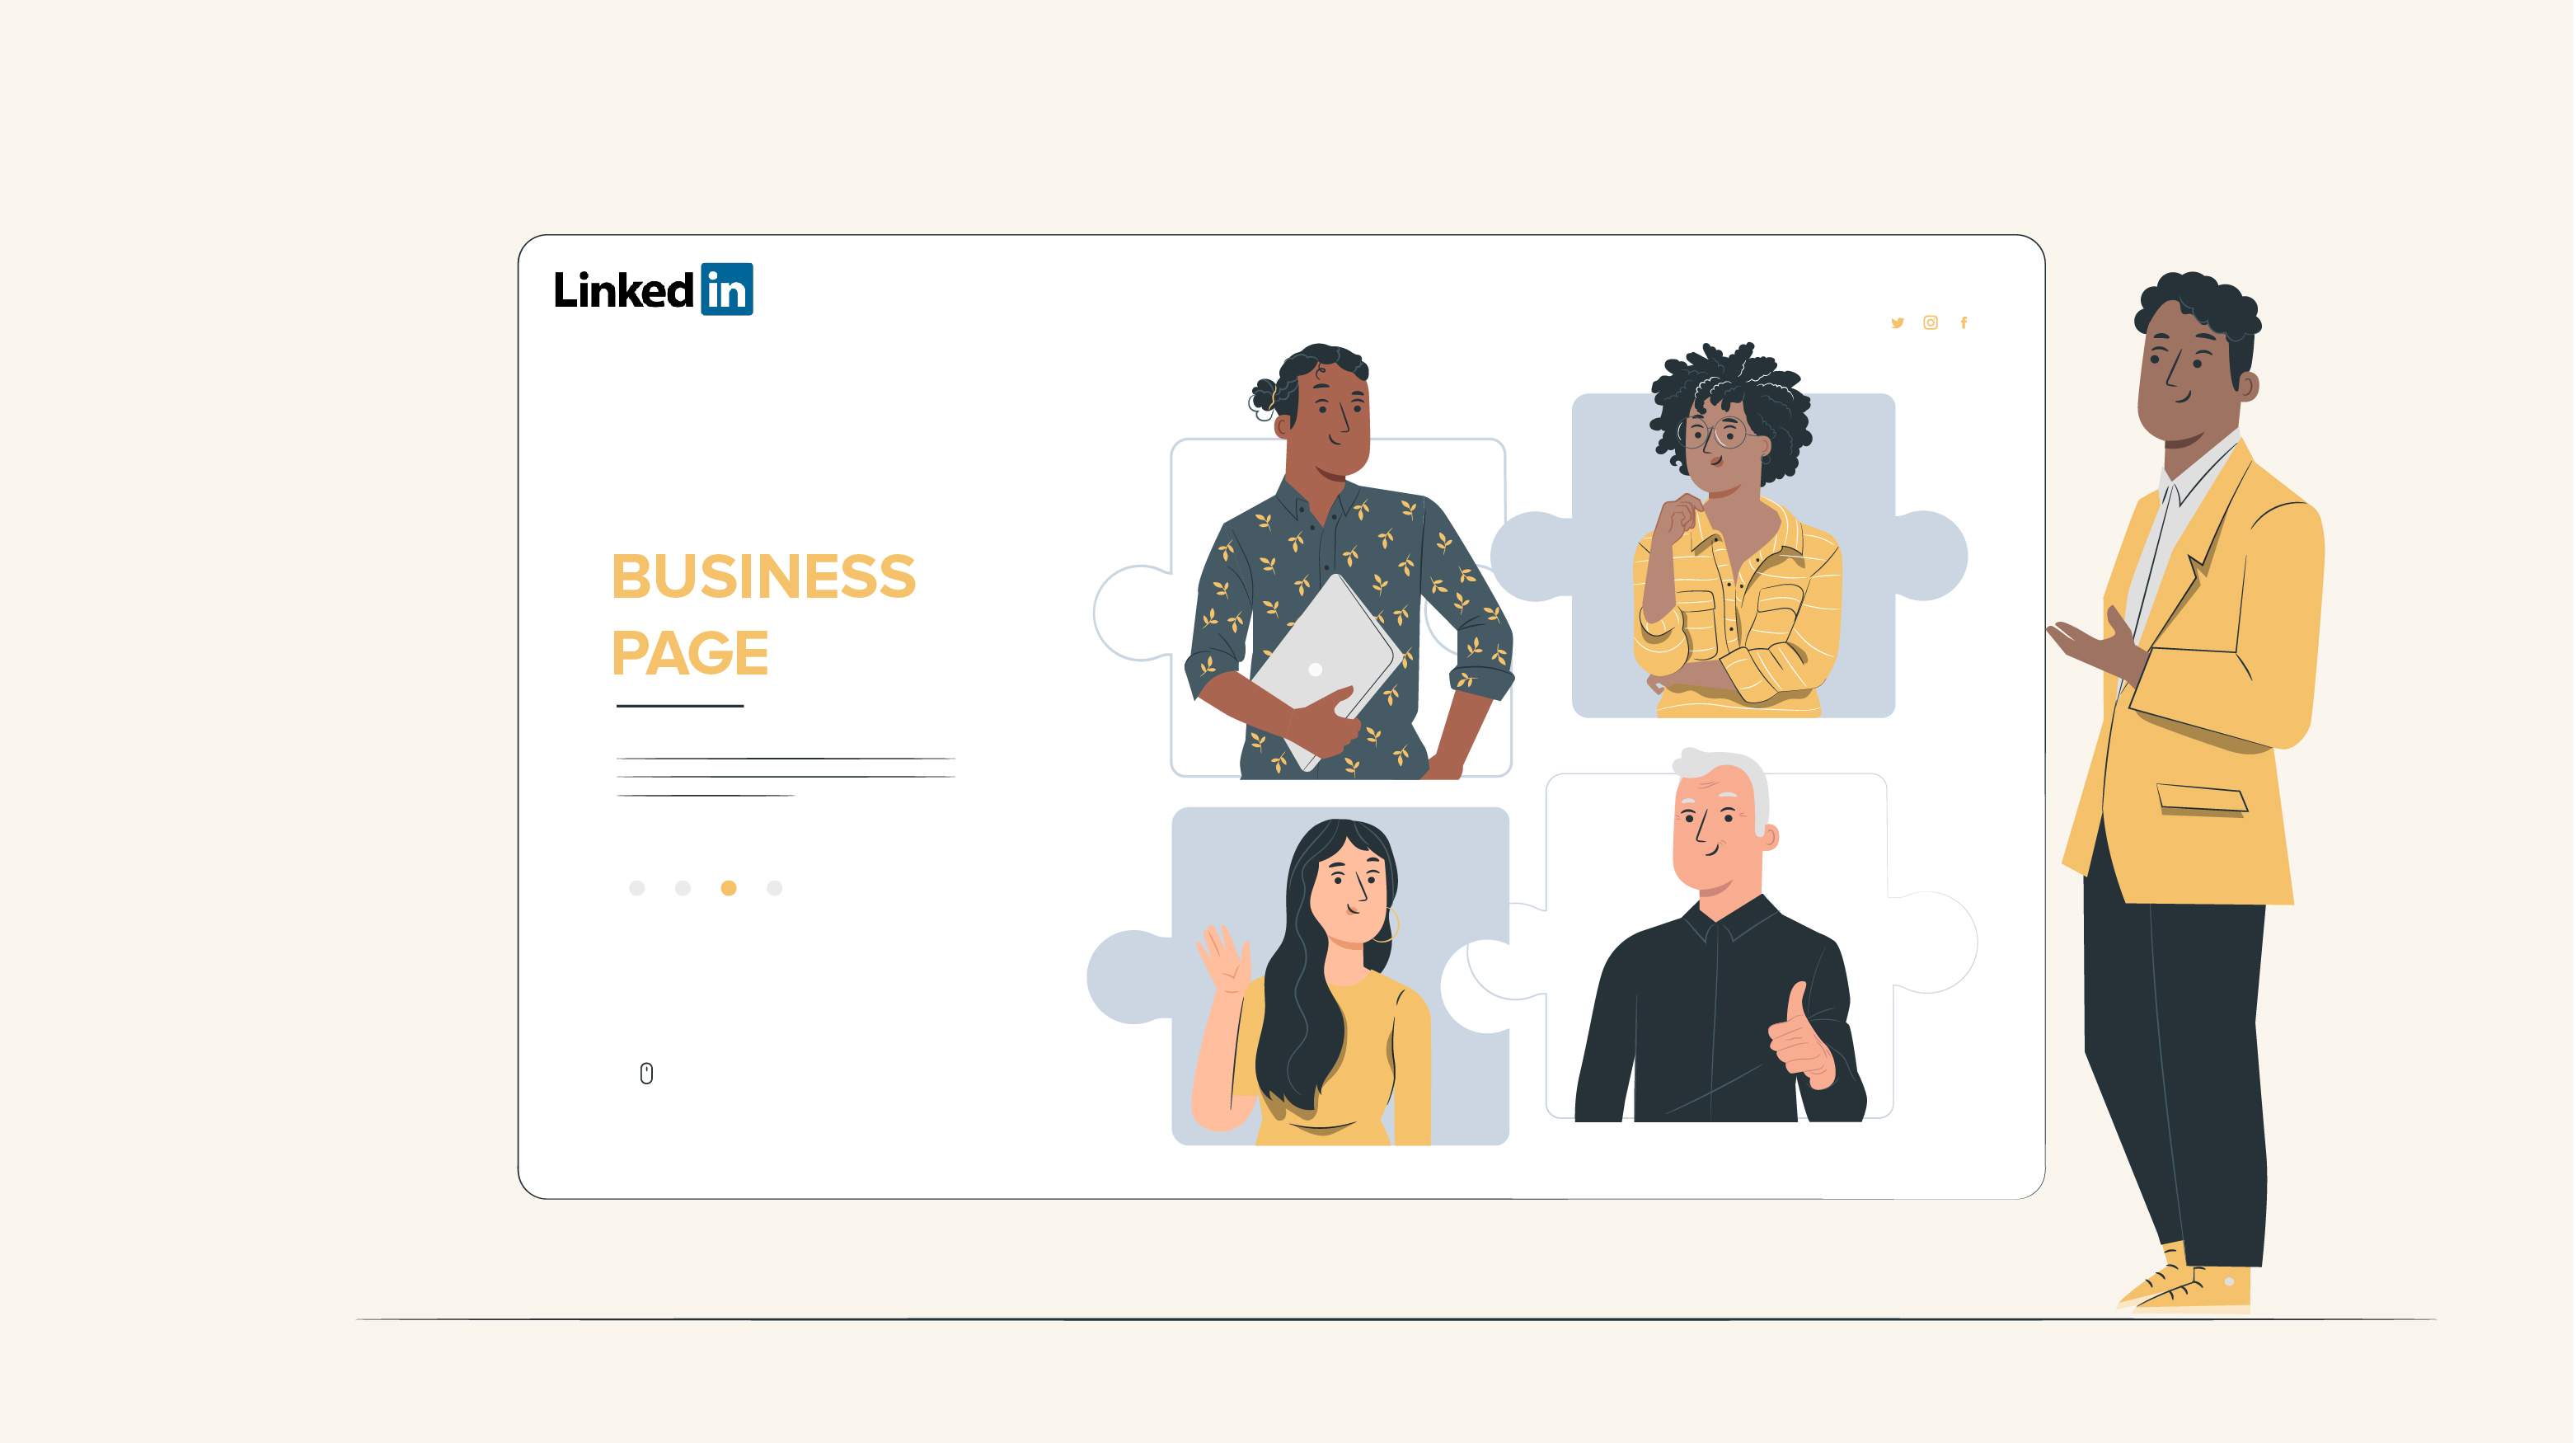 How to Grow LinkedIn Business Page with these 6 Proven Tips?